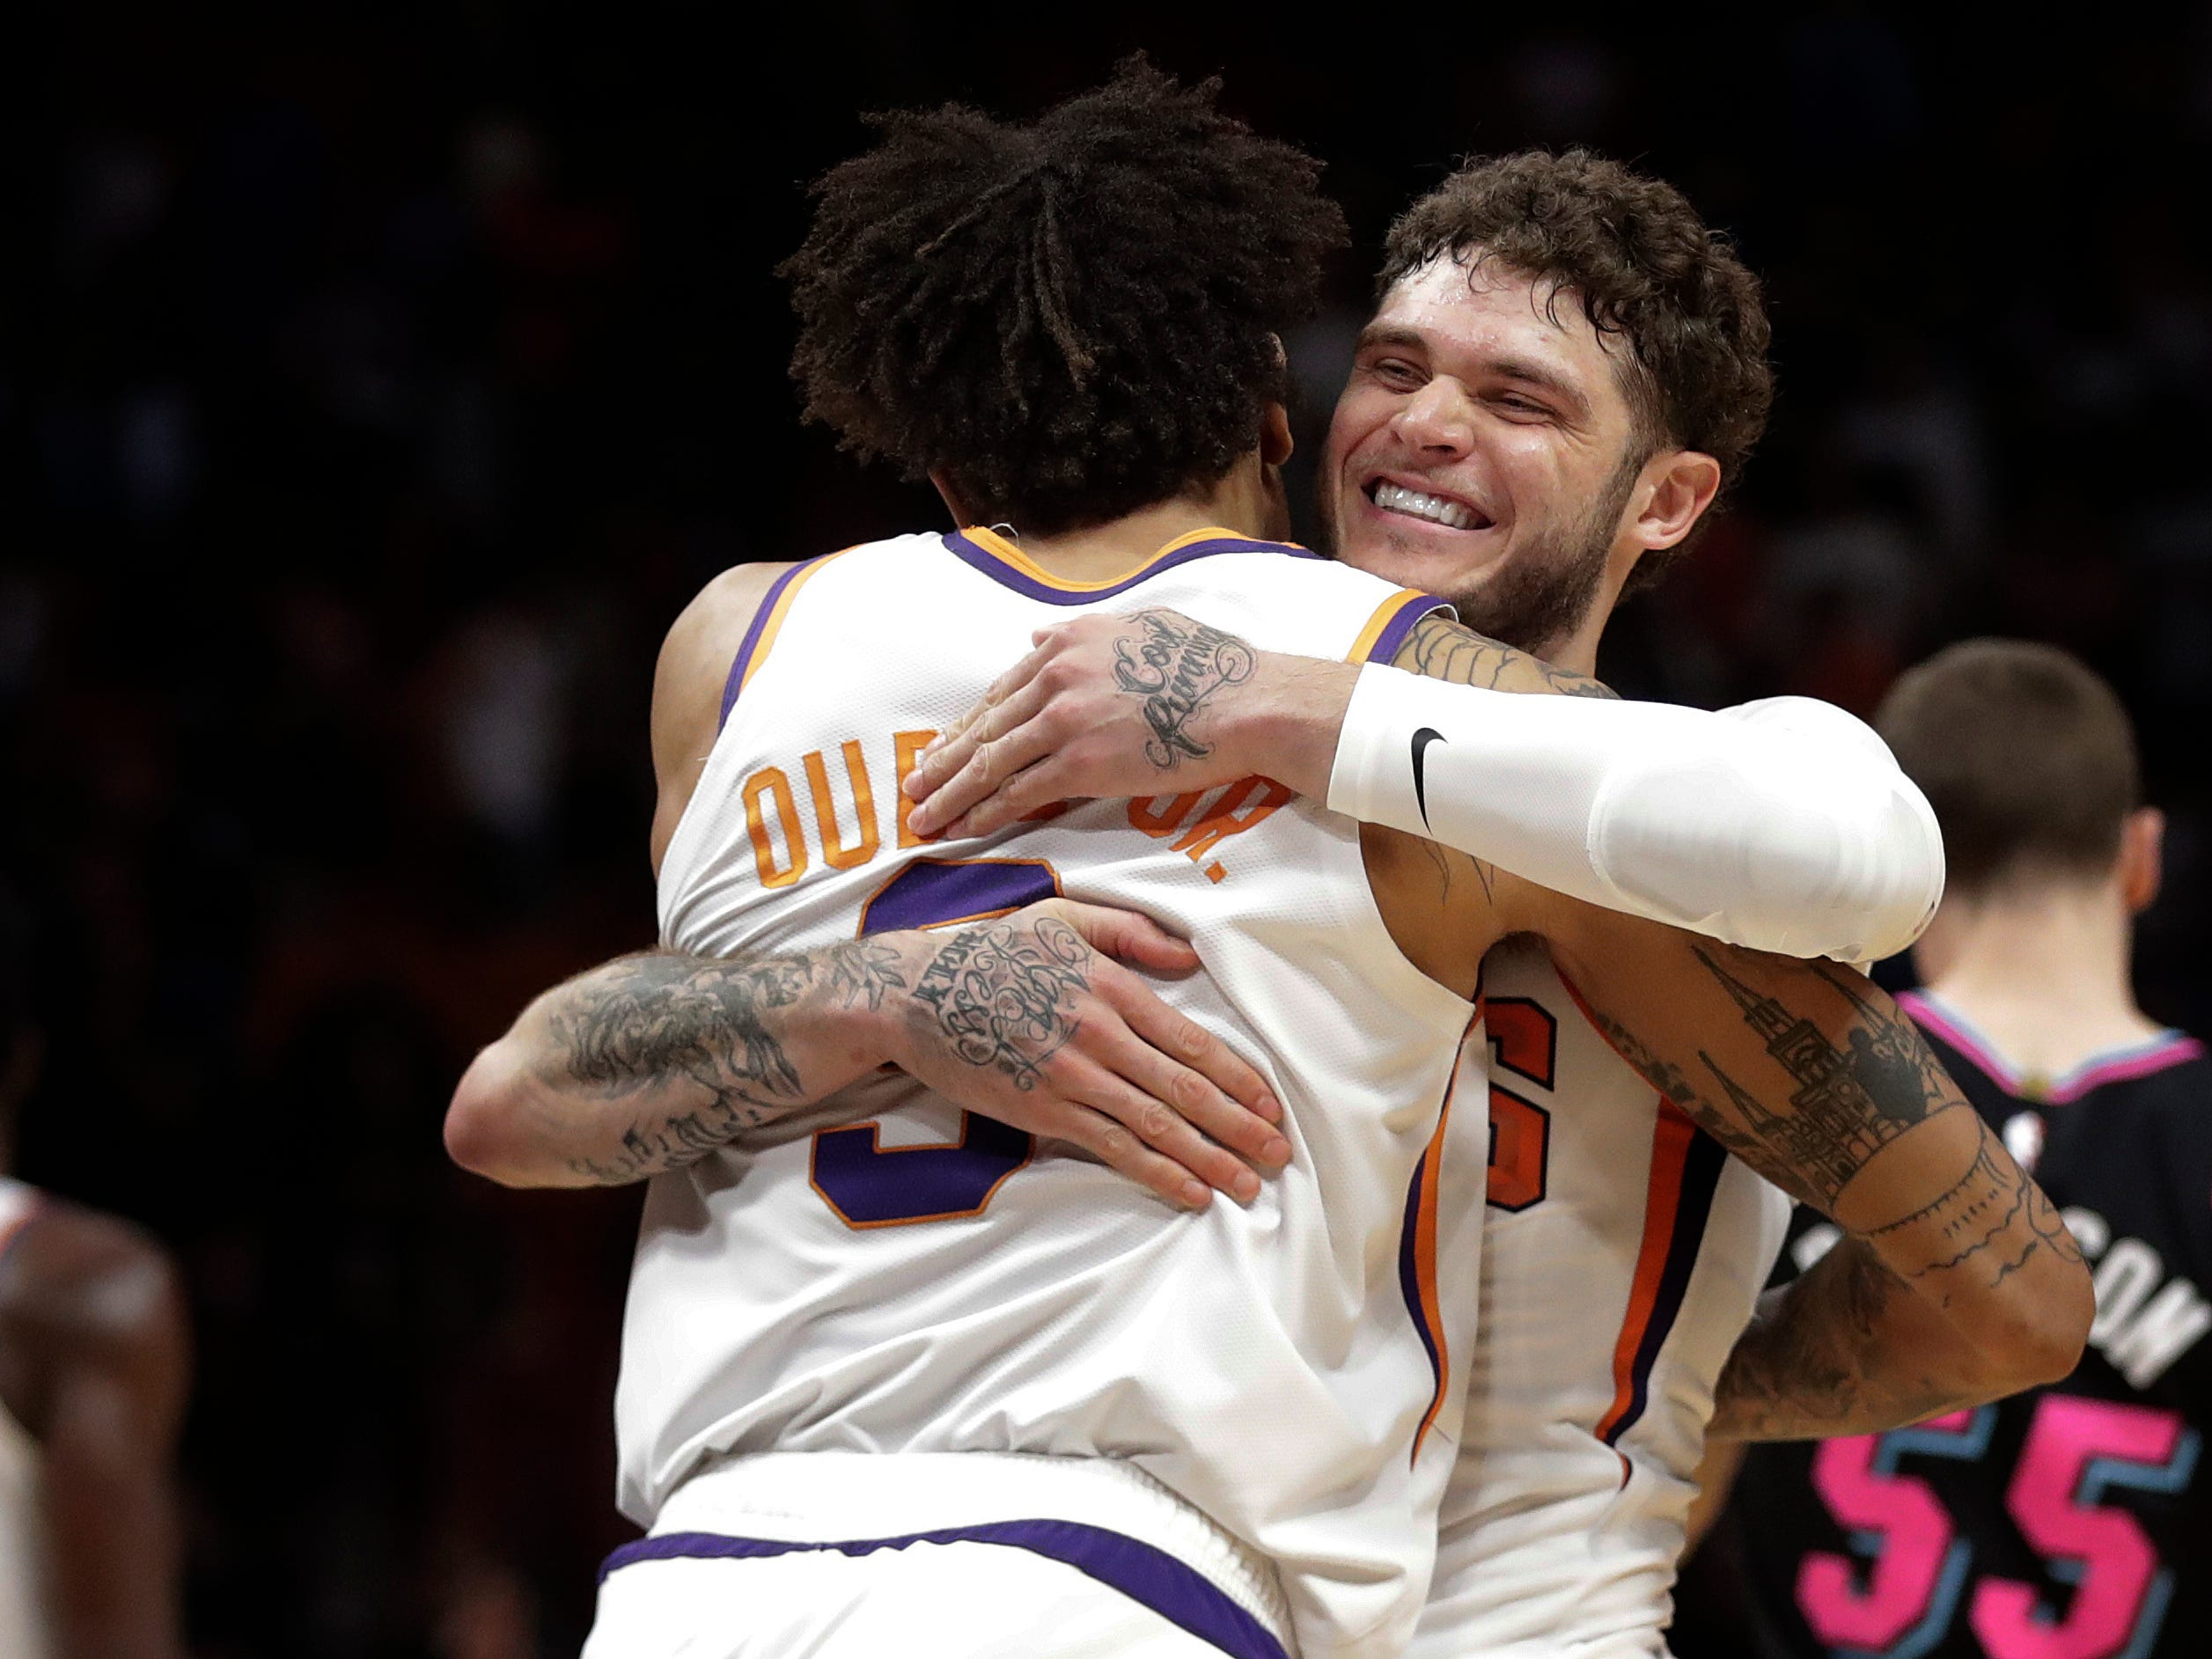 Phoenix Suns guard Tyler Johnson (16) hugs Phoenix Suns forward Kelly Oubre Jr. (3) after winning against the Miami Heat after an NBA basketball game Monday, Feb. 25, 2019, in Miami, Fla. Phoenix won, 124-121. (AP Photo/Brynn Anderson)